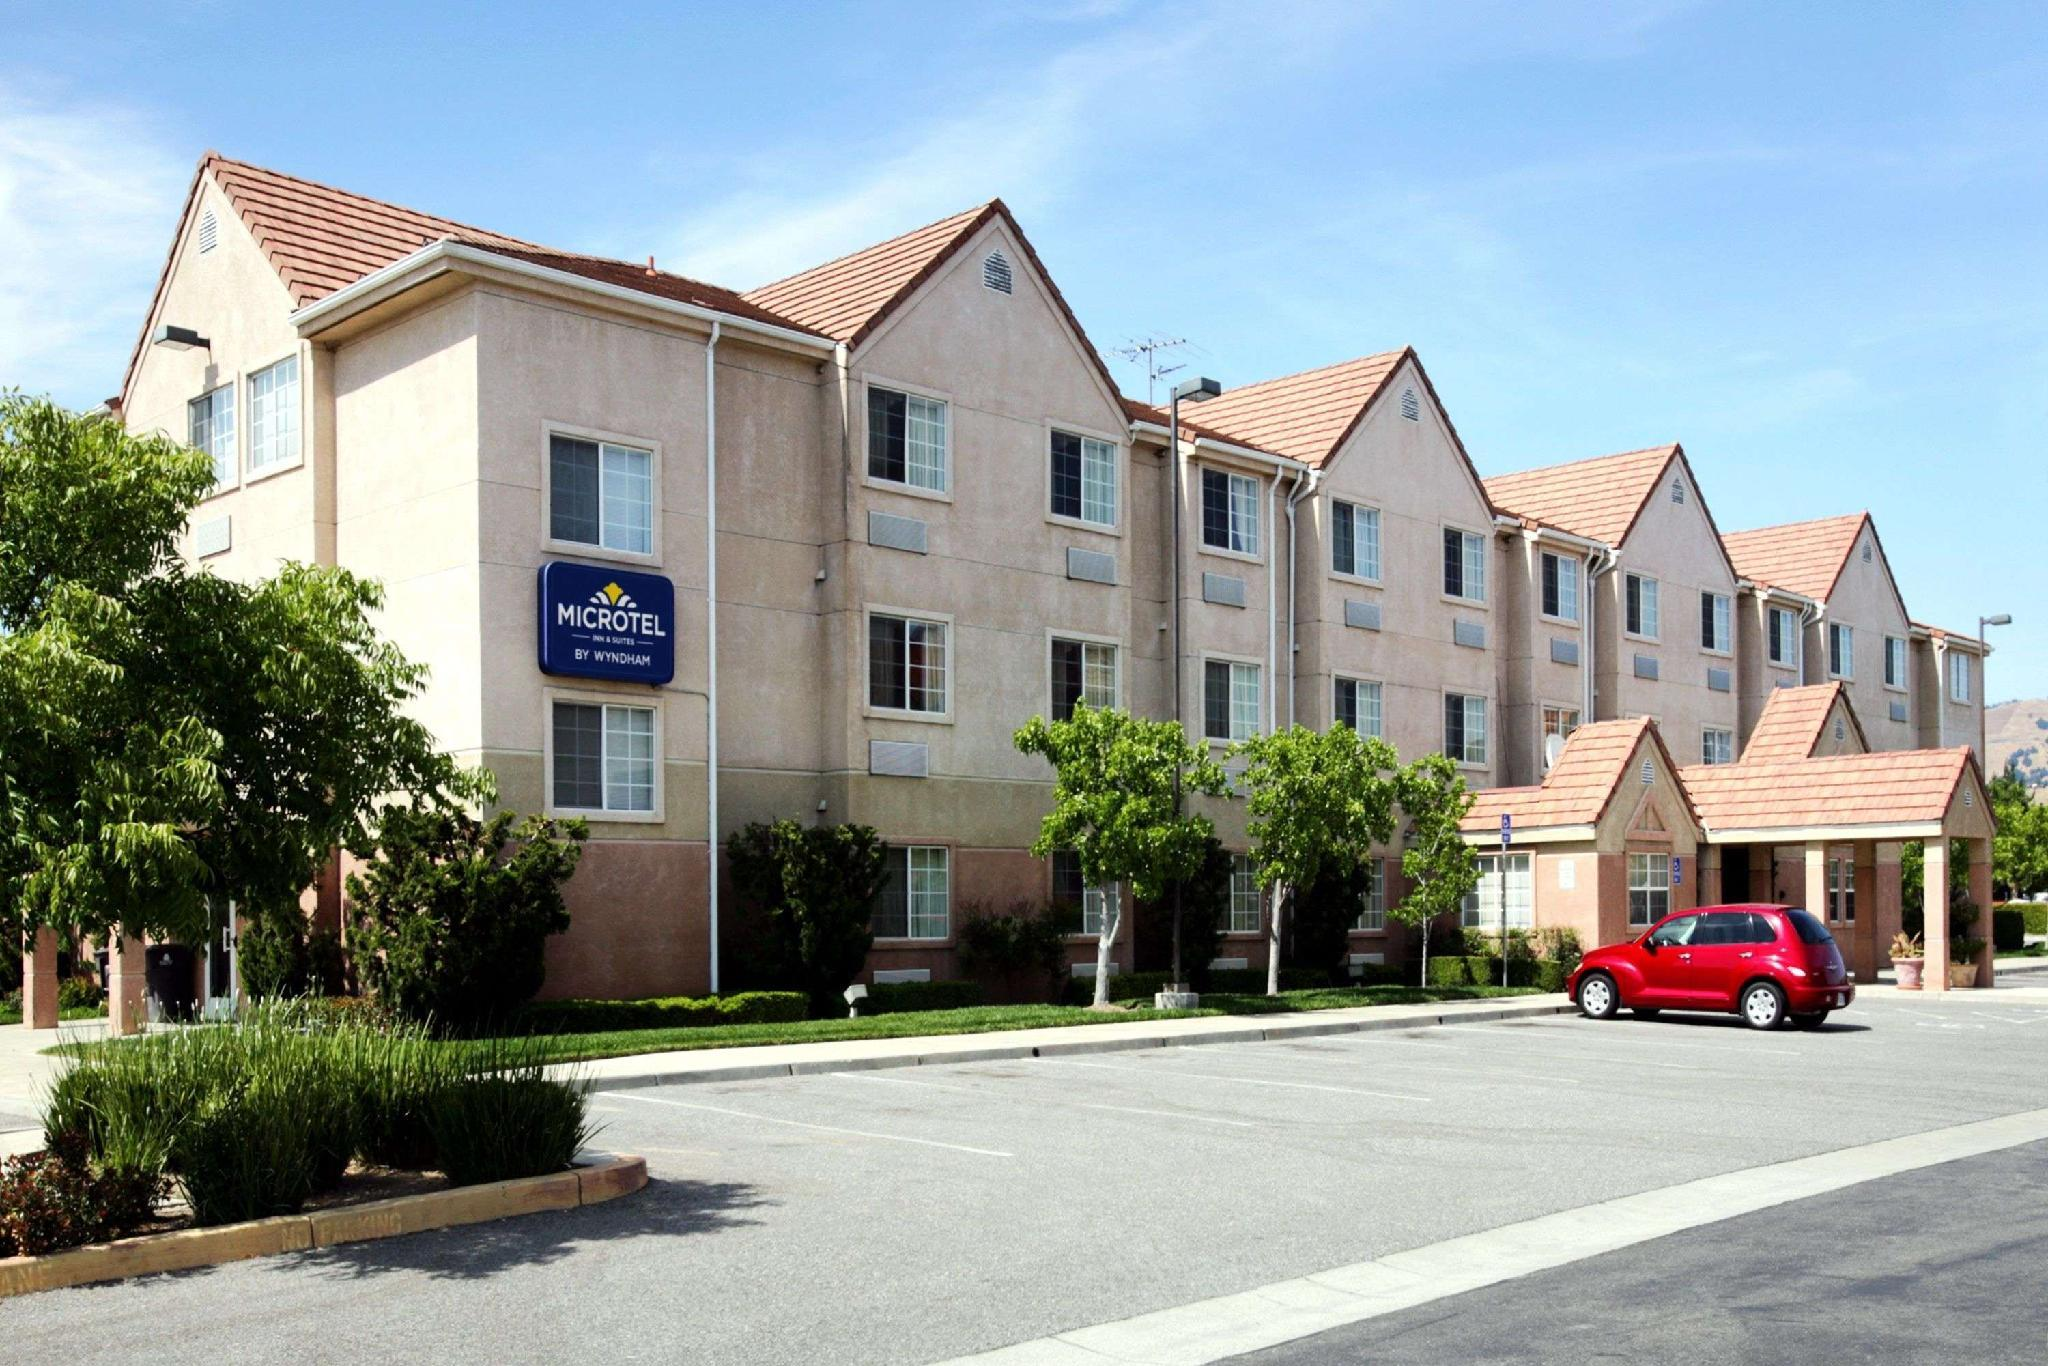 Microtel Inn And Suites By Wyndham Morgan Hill San Jose Area